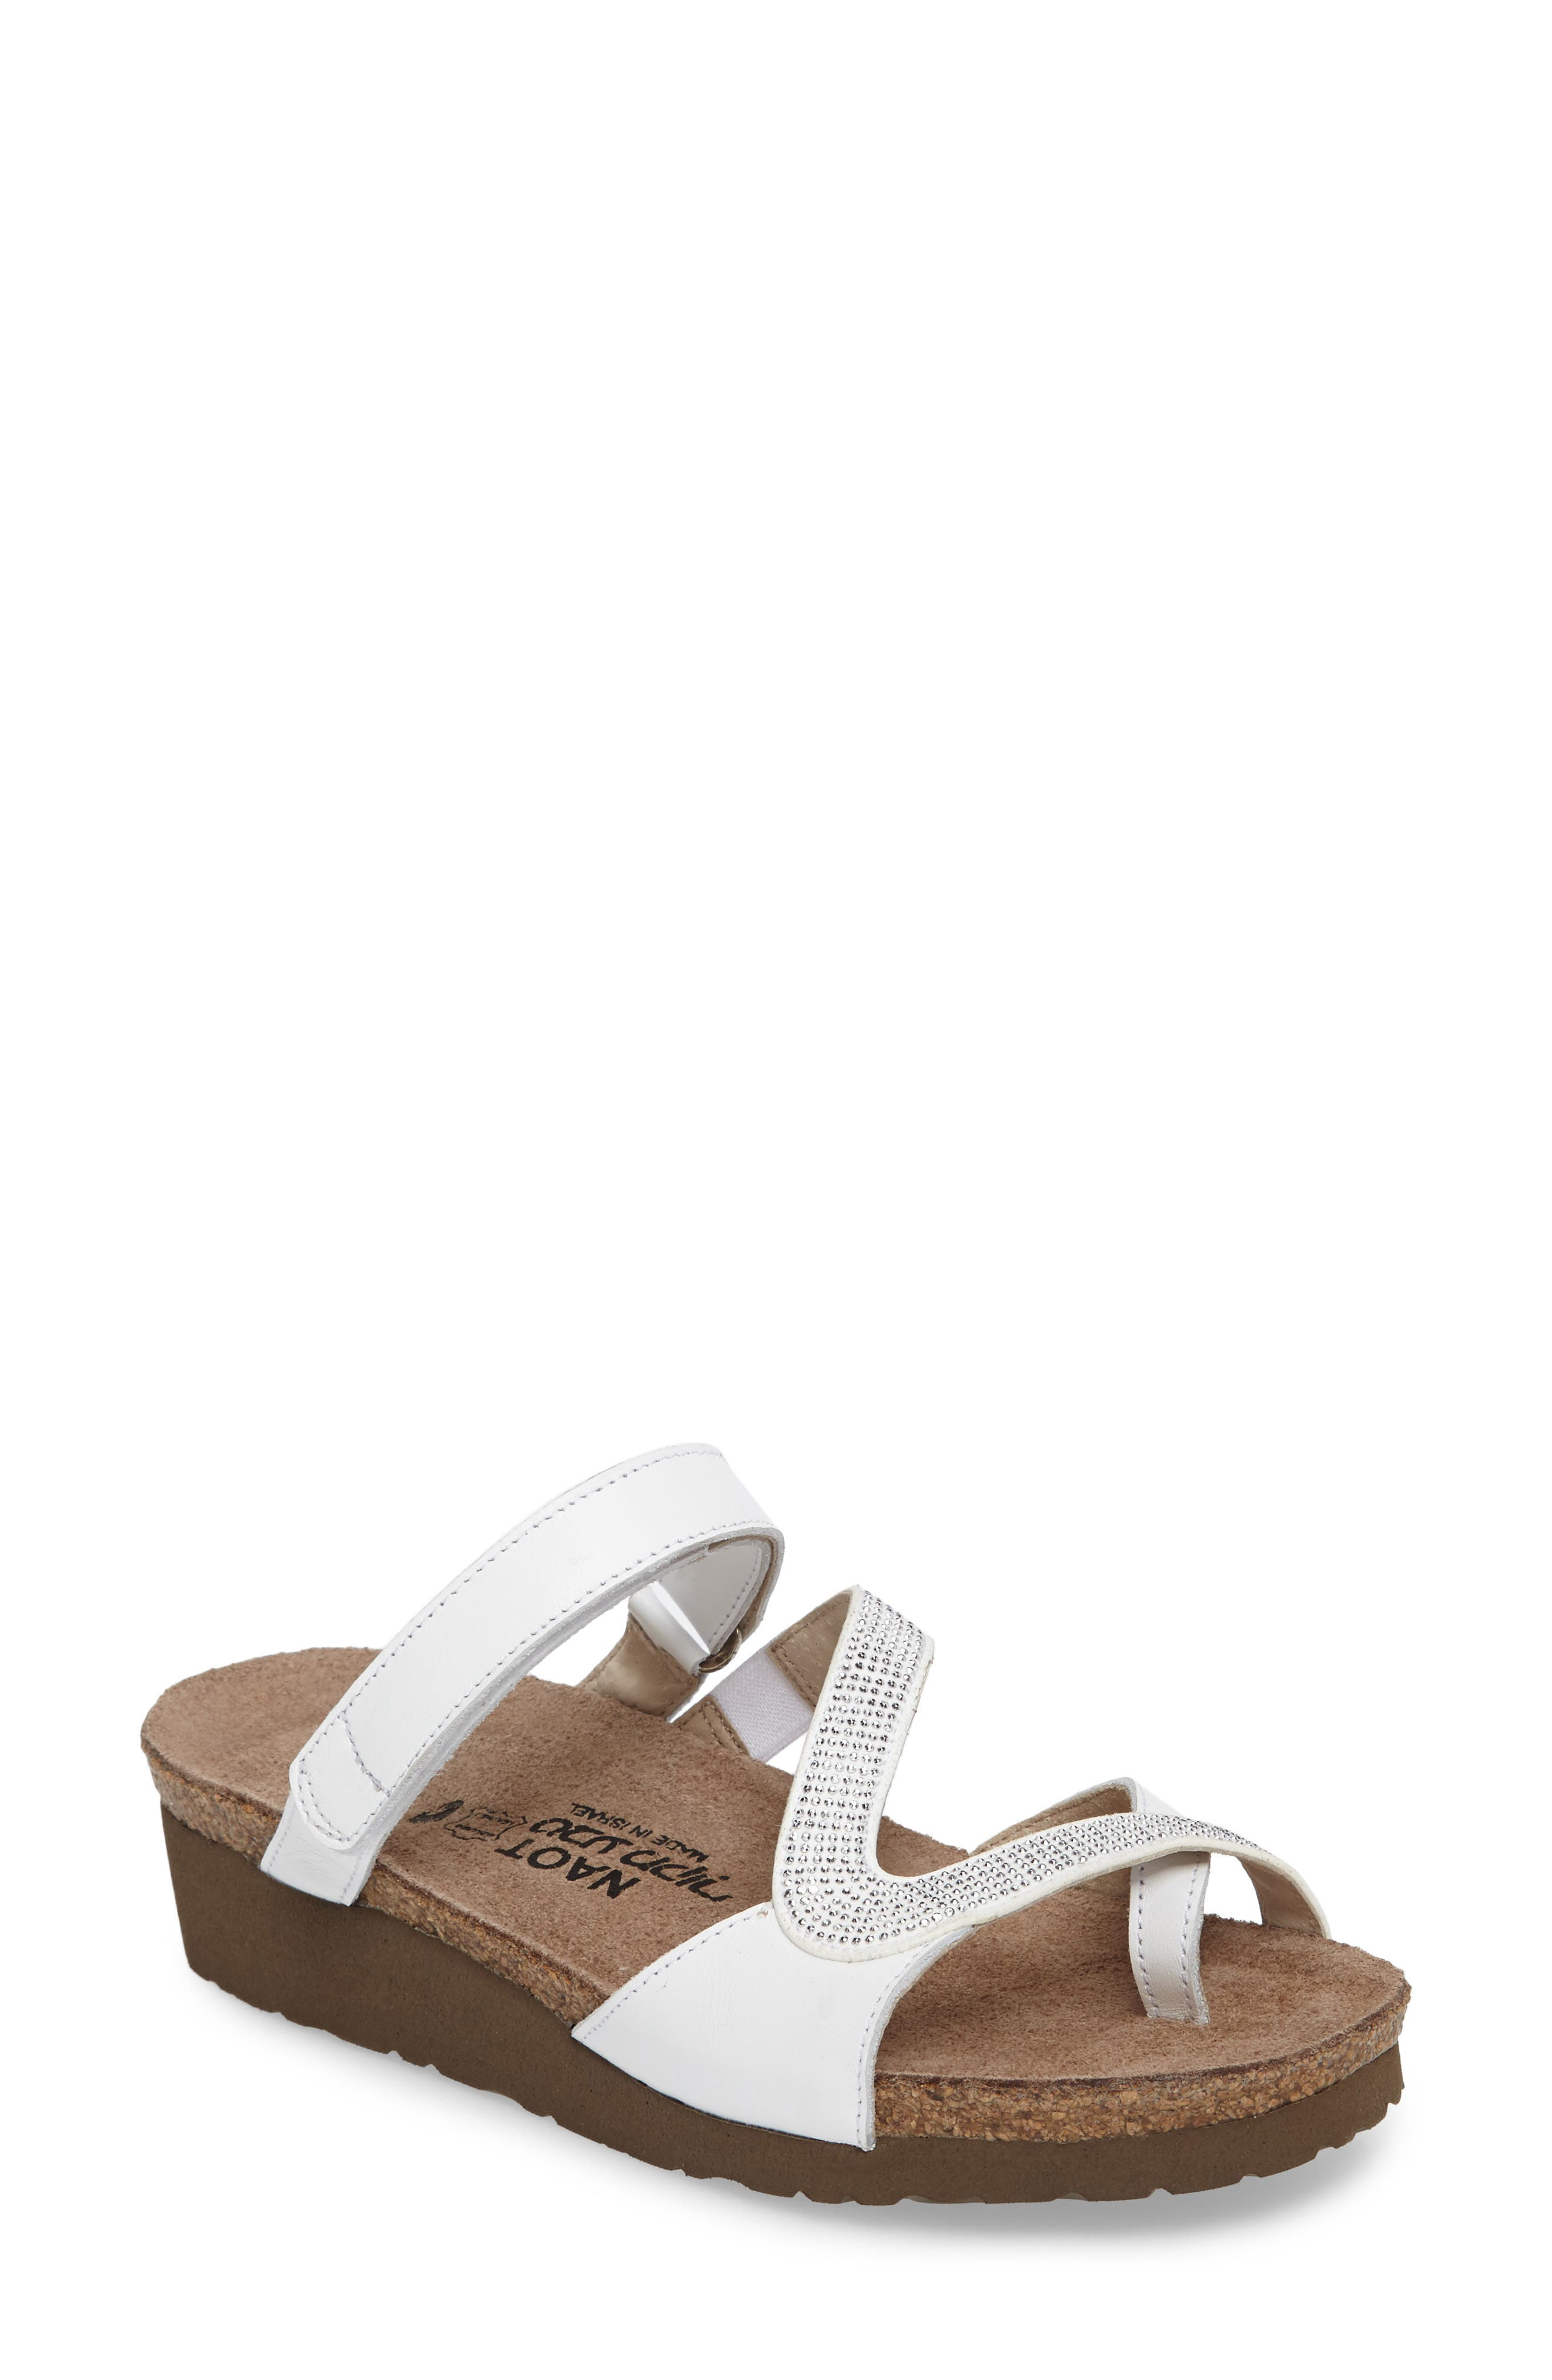 Giovanna Sandal,                             Main thumbnail 1, color,                             White Leather